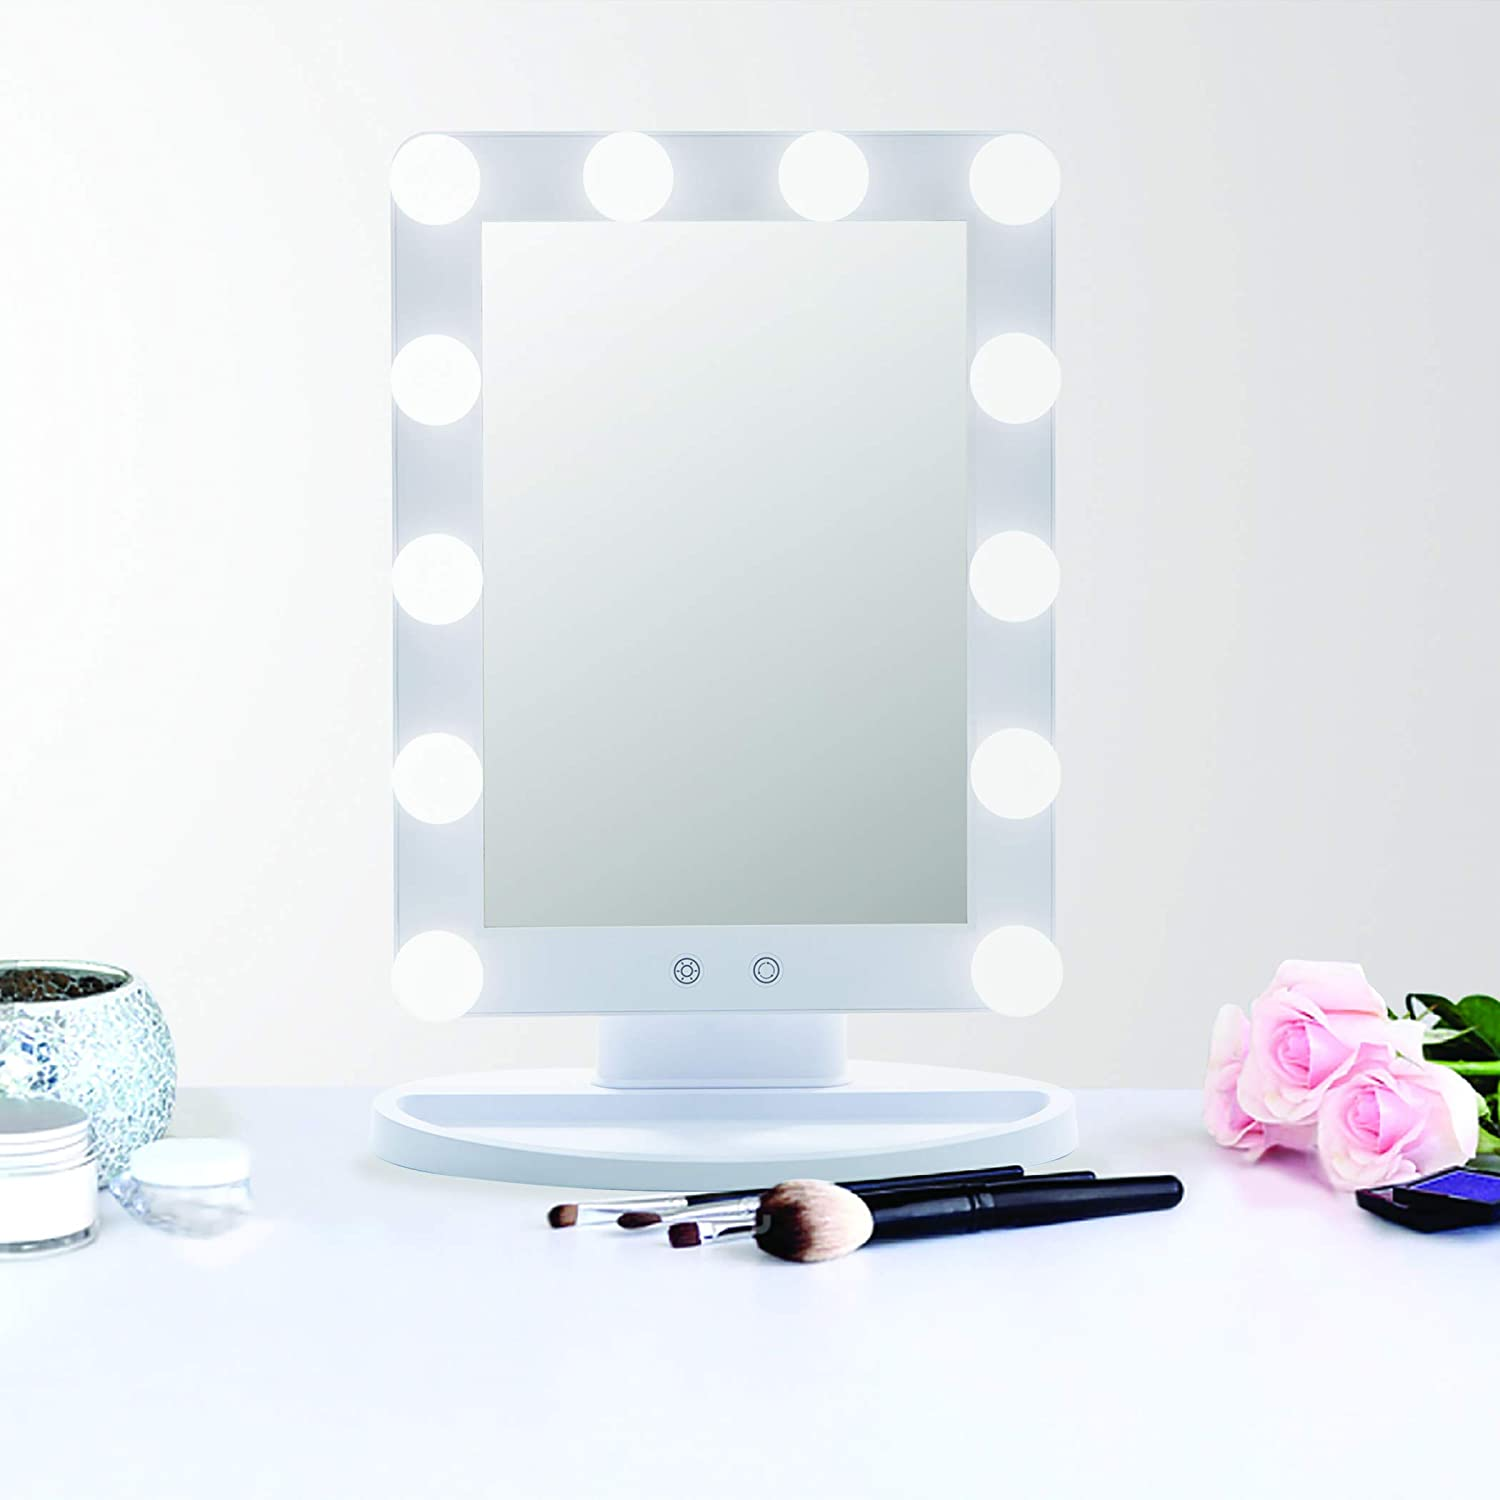 BINO 'Hollywood' Large Makeup Vanity Mirror With Lights - 14 Inch Makeup Mirror With Lights - LED makeup mirror for Bathroom or Bedroom